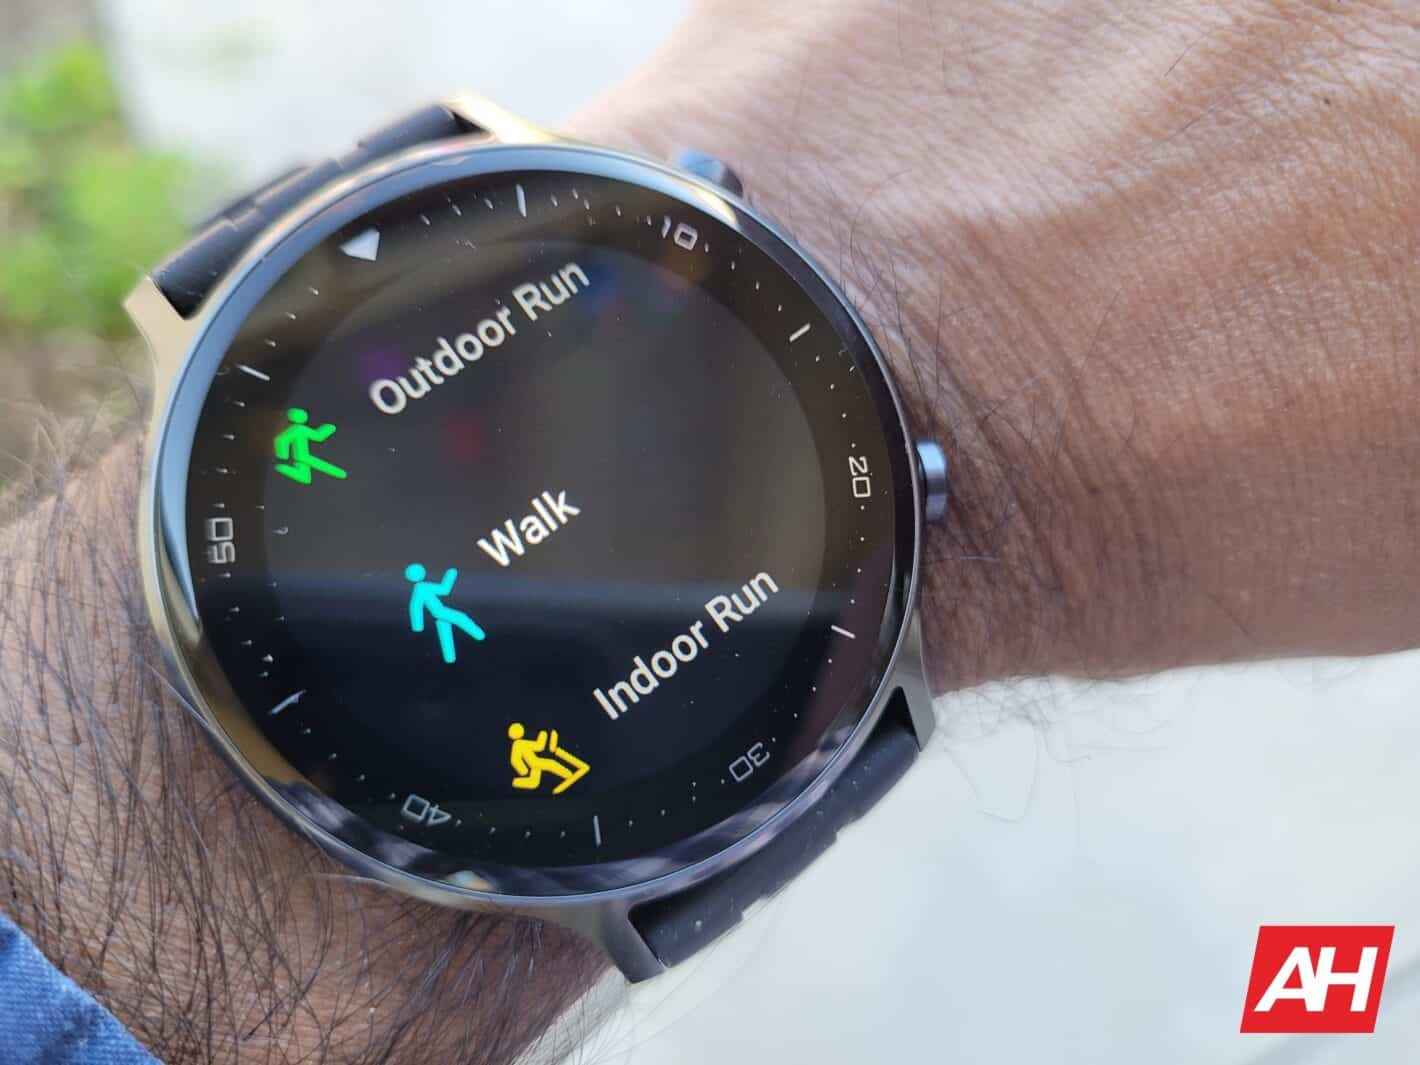 Realme Watch S AH HR Fitness1